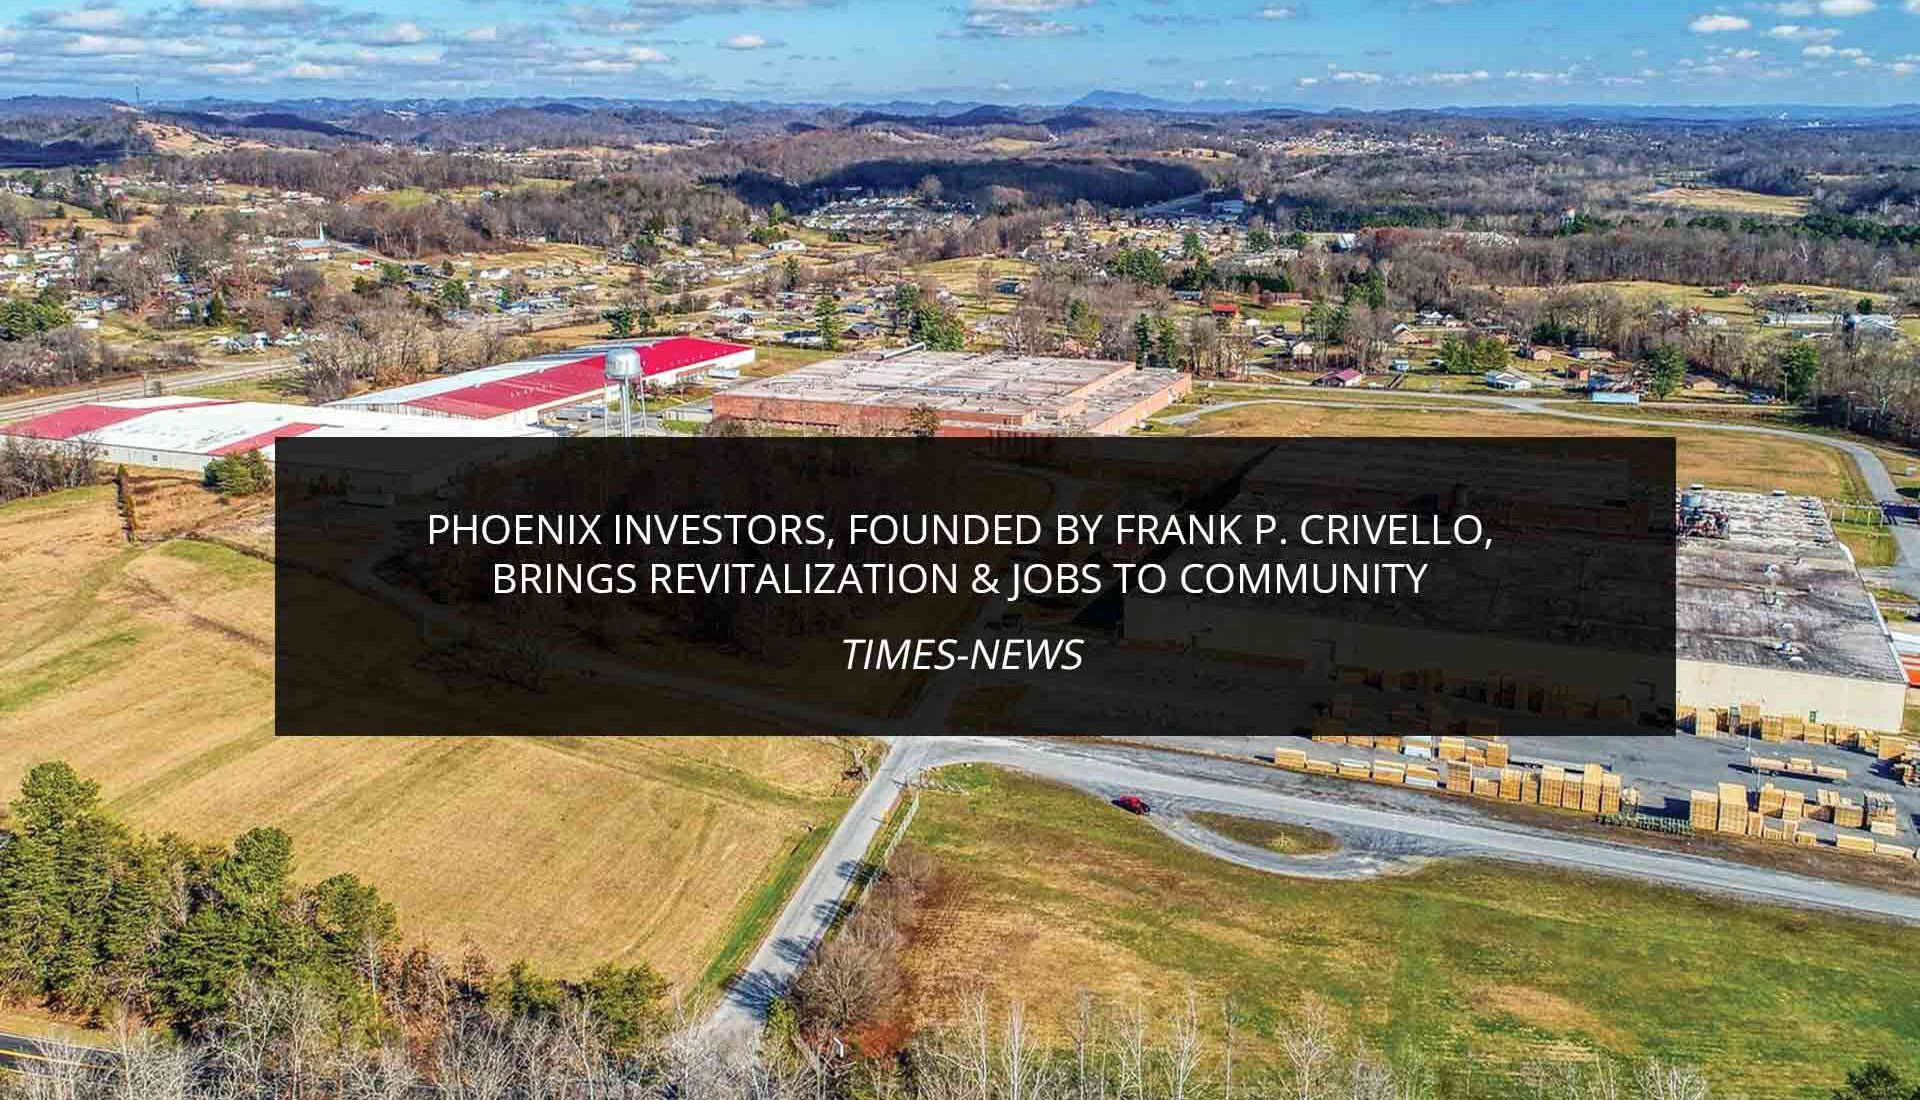 Phoenix Investors, Founded by Frank P. Crivello, Brings Revitalization & Jobs to Community